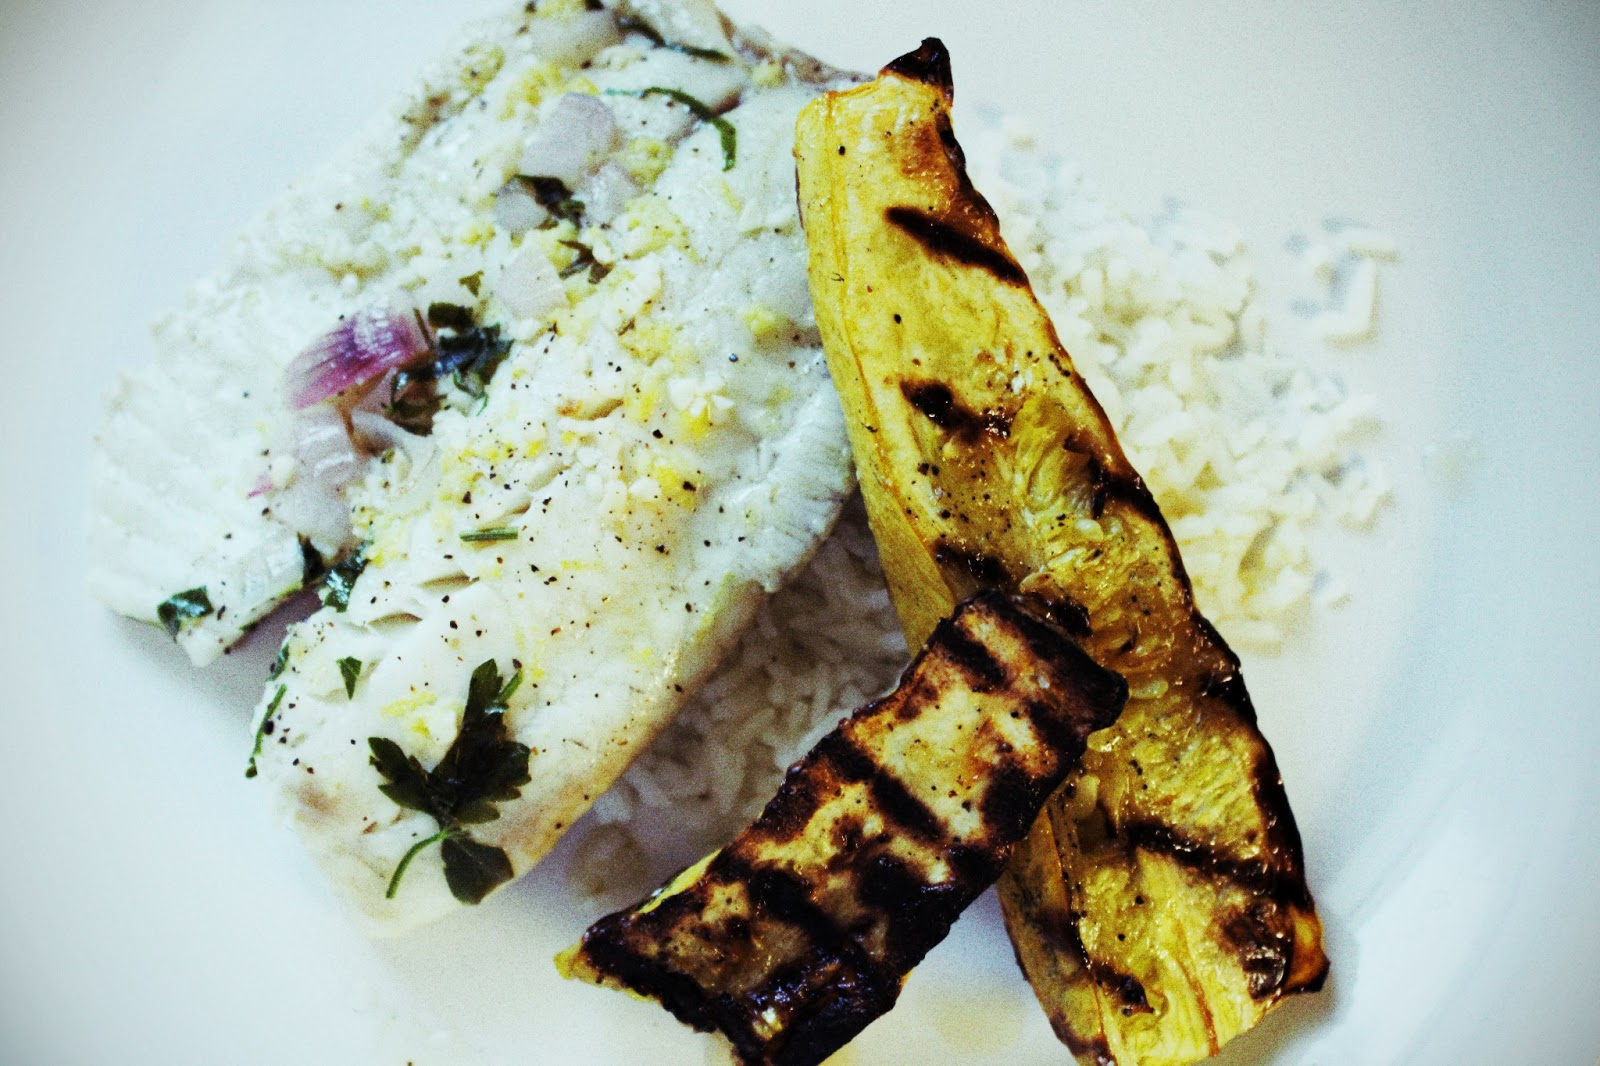 THE EVERYTHING + SOAP BLOG: Thai Inspired Grilled Tilapia and Squash